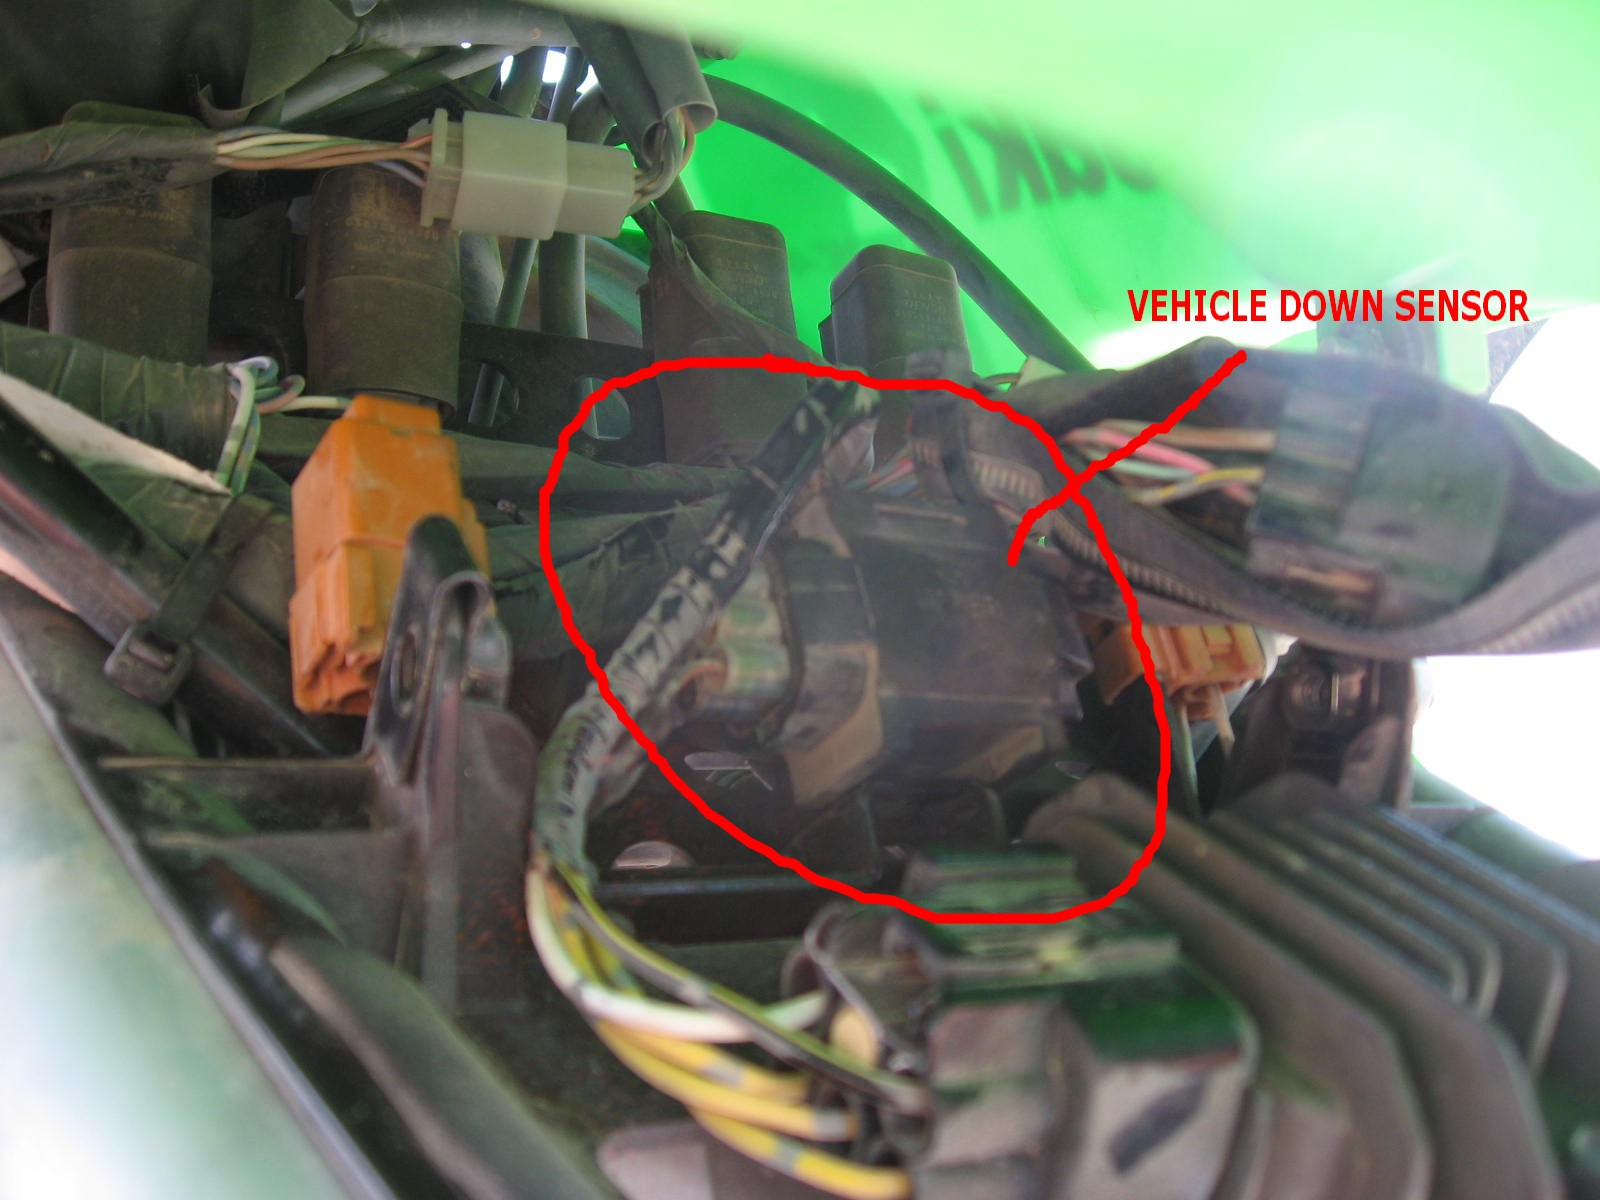 Vehicle Down Sensor!! - Kawasaki KFX450 Forum :: KFX450HQ com